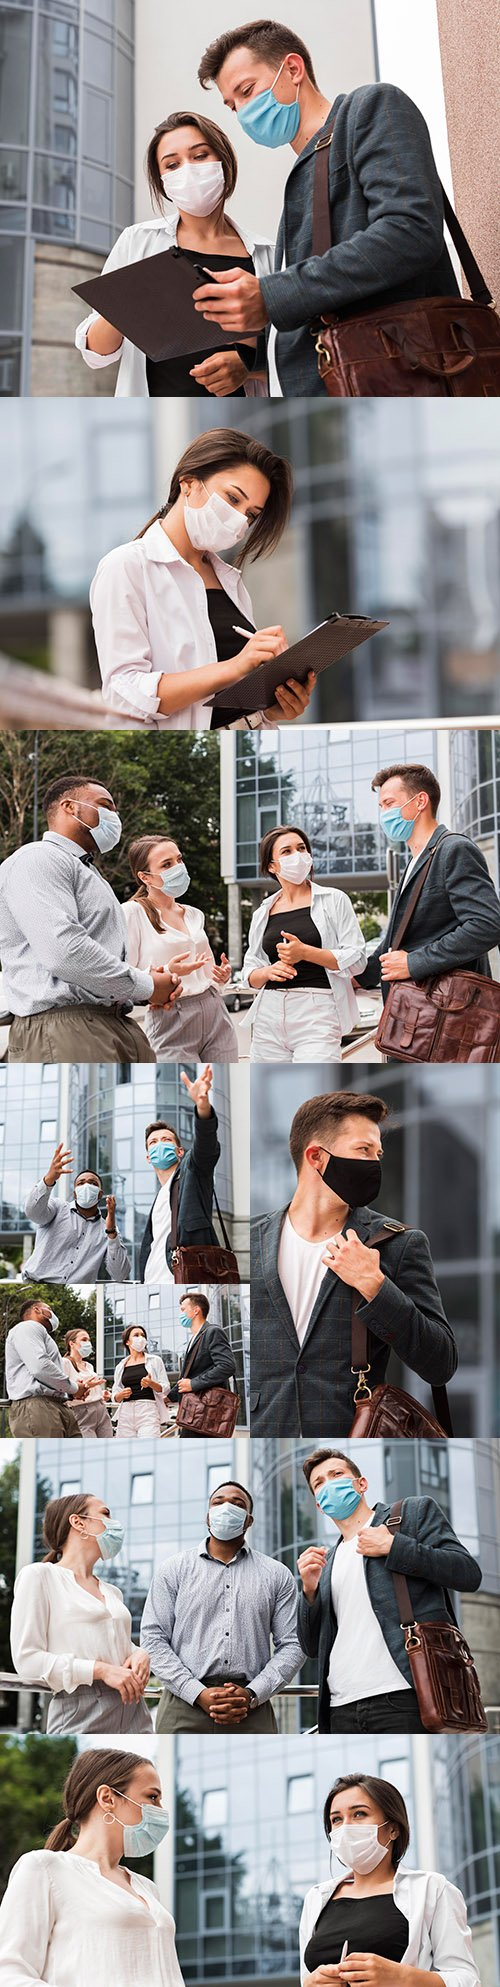 Colleagues chat outdoors during pandemic with face masks